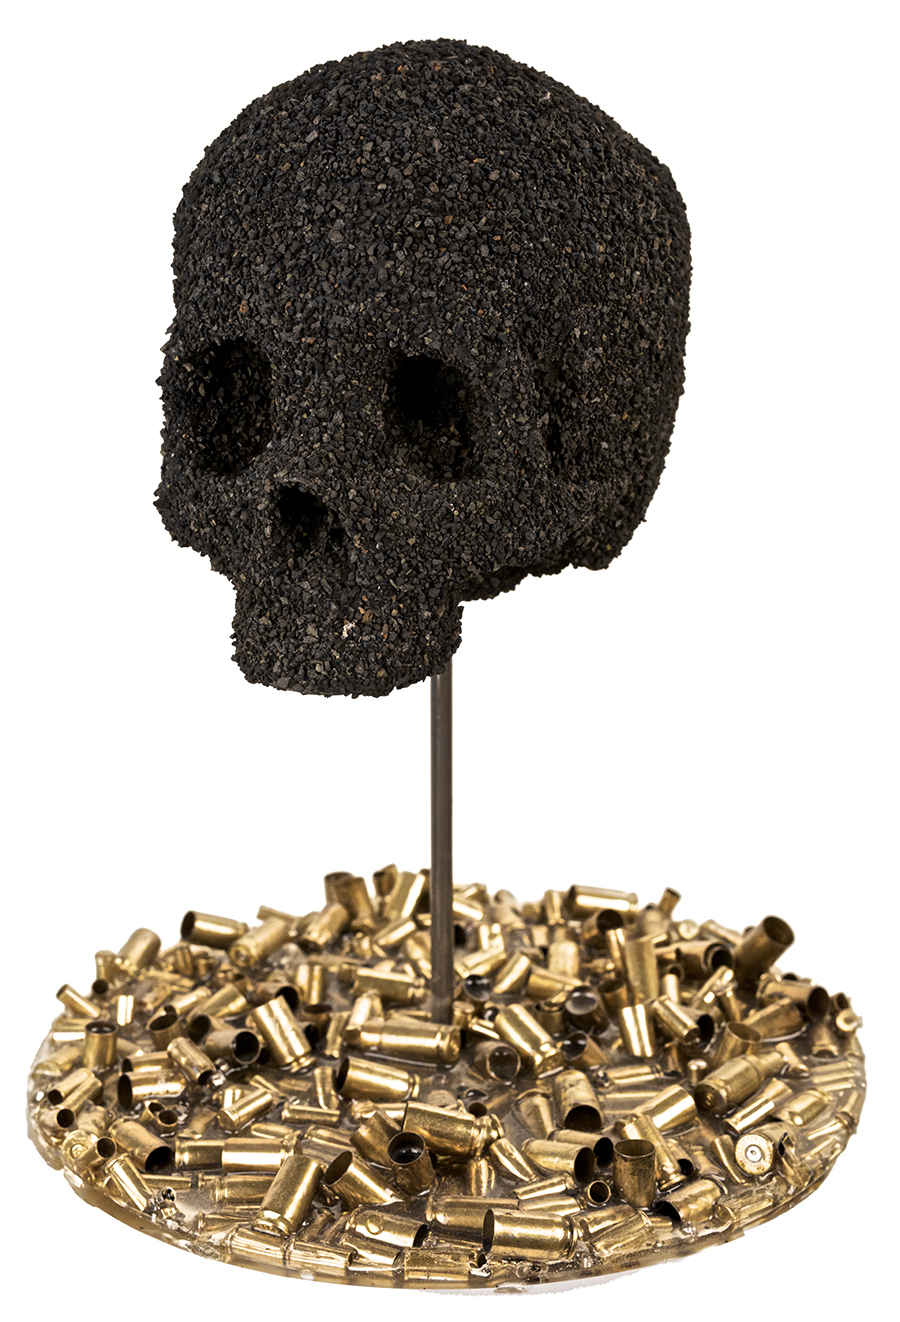 """REMNANTS OF THE HUMAN CONDITION""  GUNPOWDER, CHARCOAL, RESIN, OIL, BULLET CASINGS"